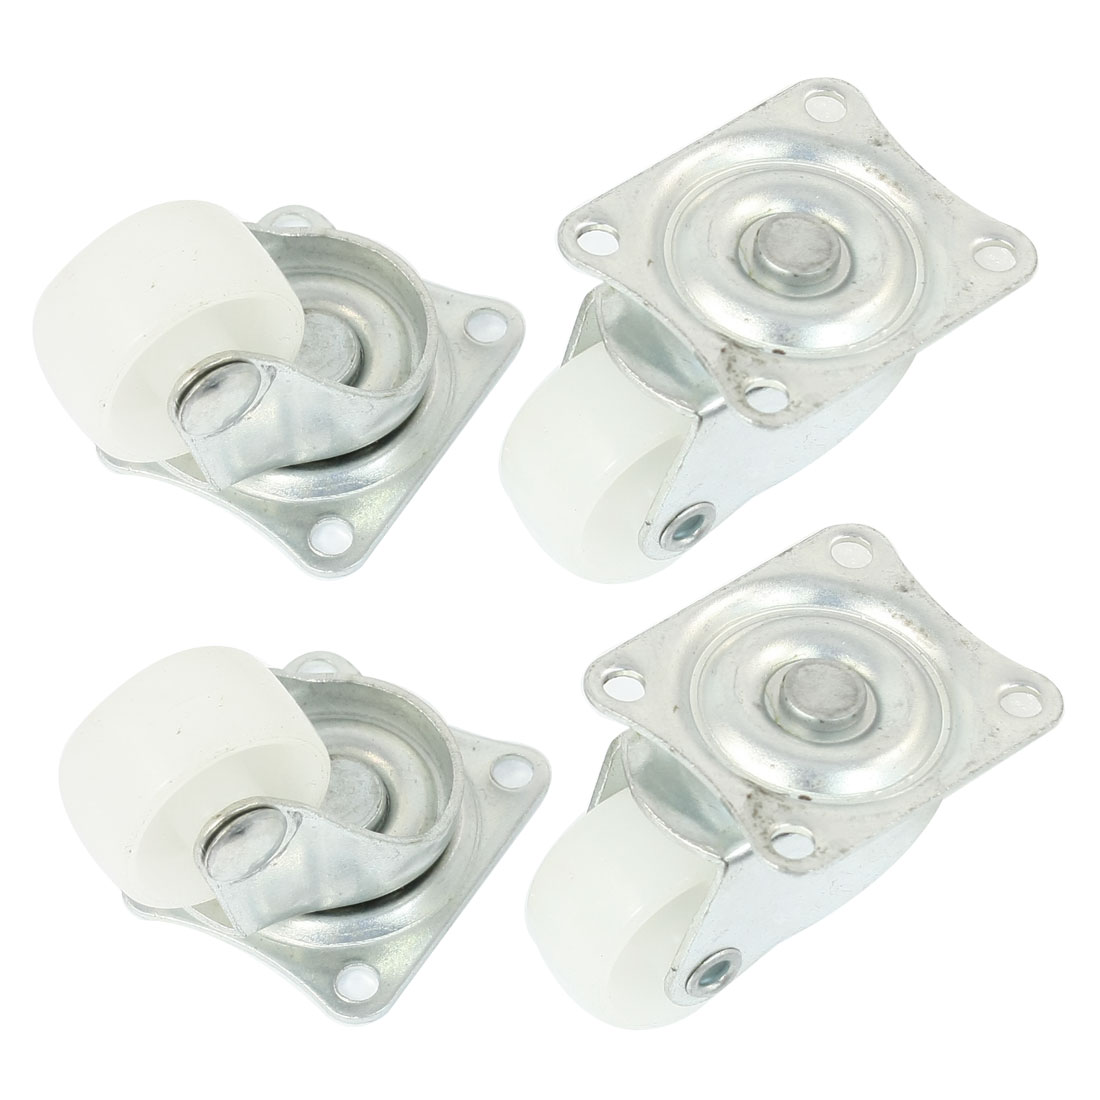 "Luggage Case Carts 1"" Round Rotatable Swivel Wheel Caster Silver Tone White 4pcs"